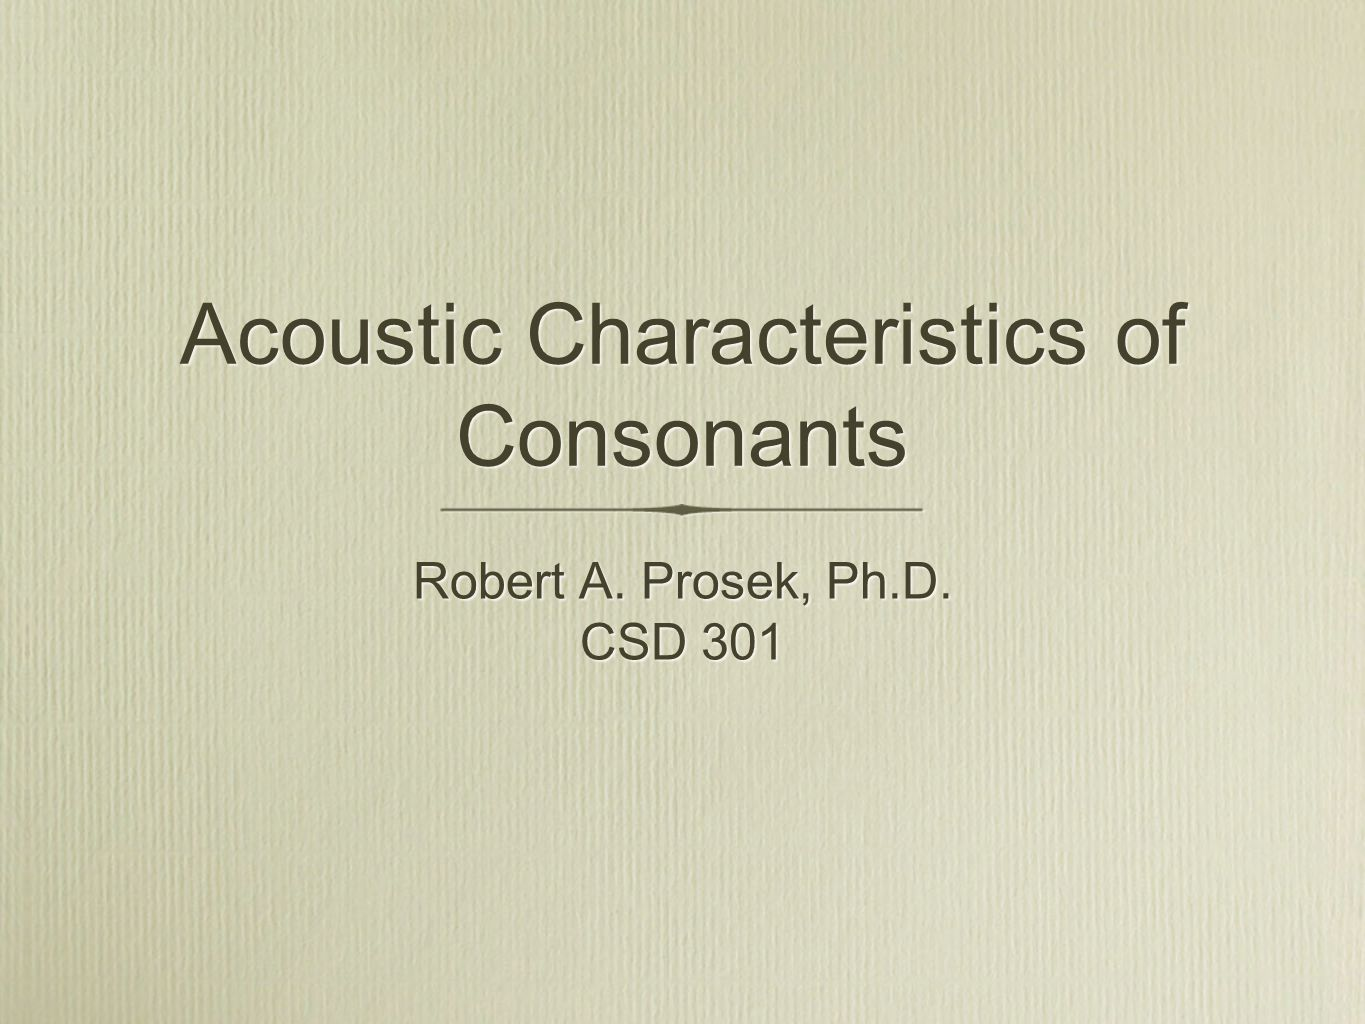 Acoustic Characteristics of Consonants